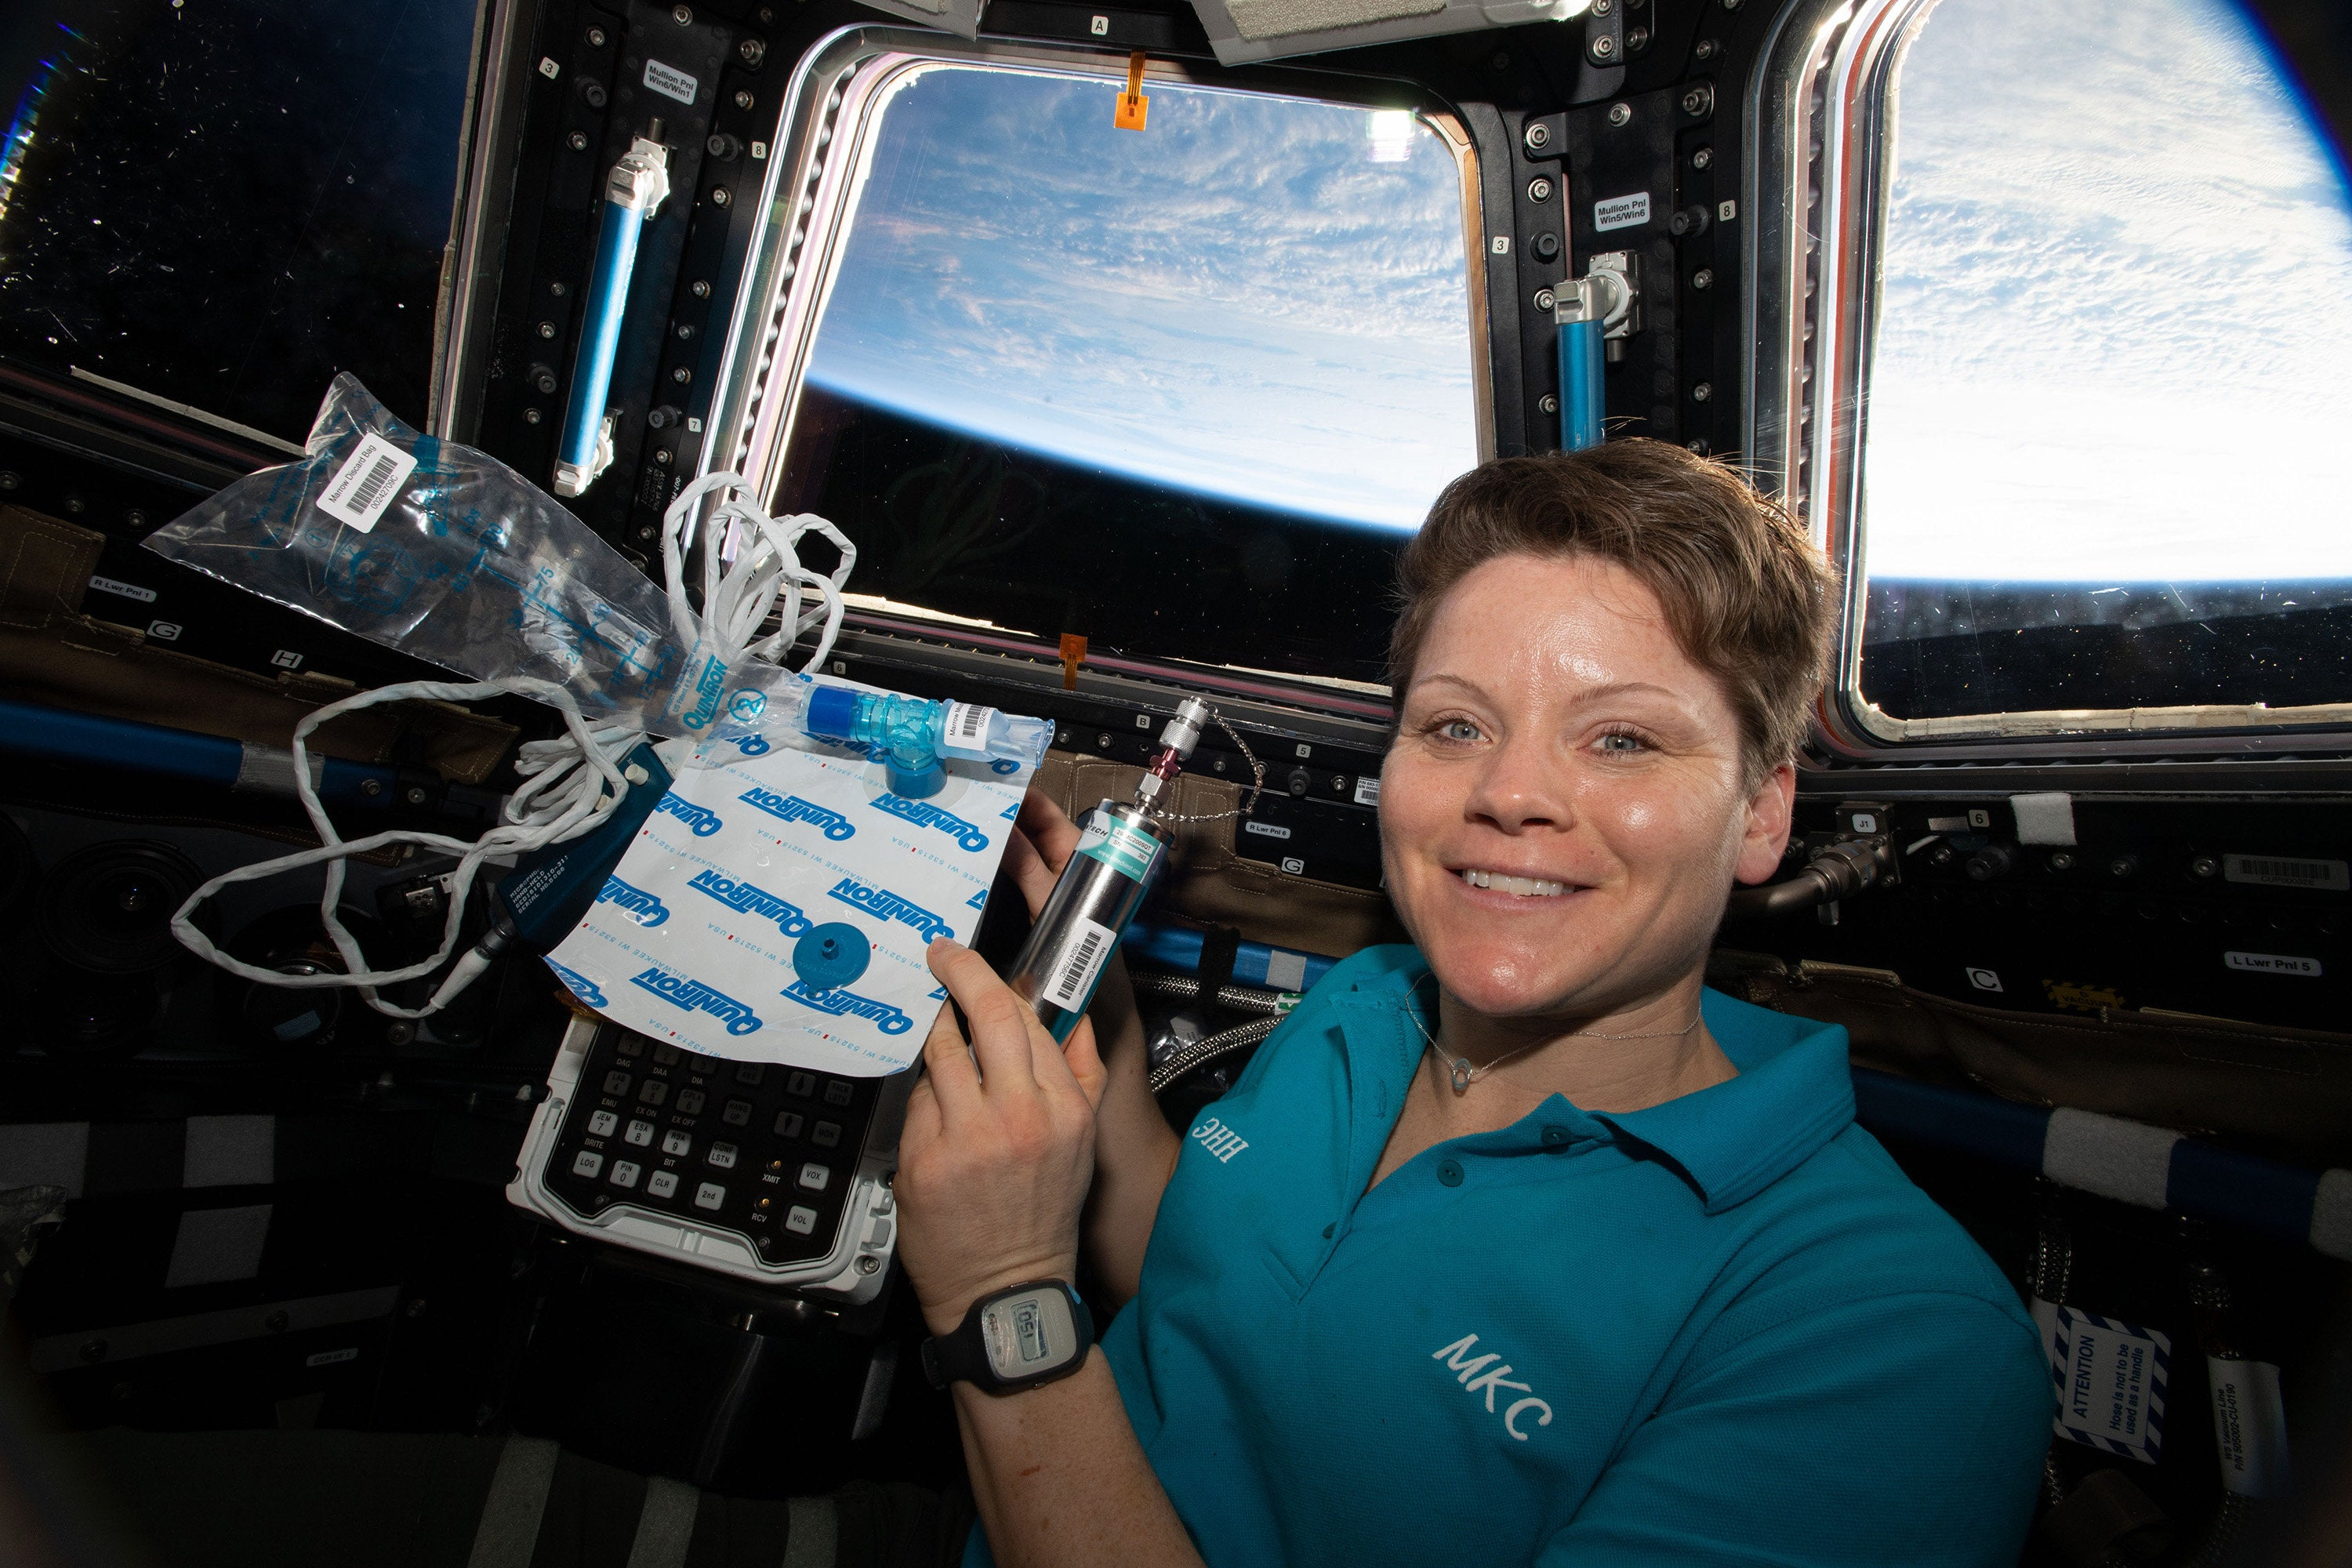 Army astronaut holds Q&A from space